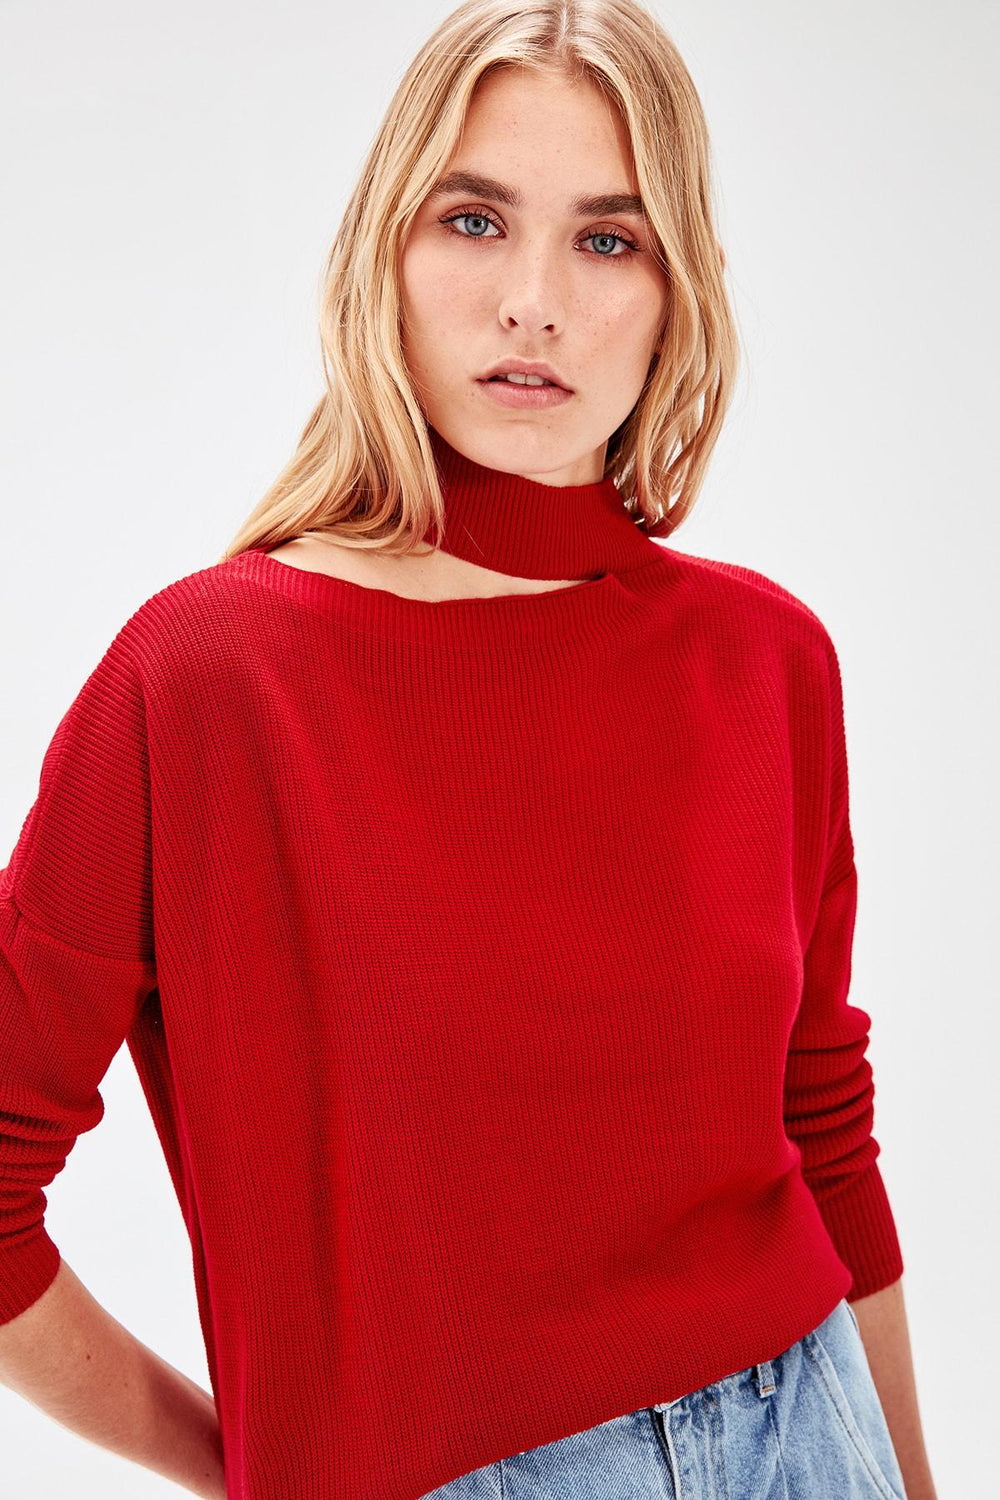 Red Cut-Out Detail Sweater - Top Maxy